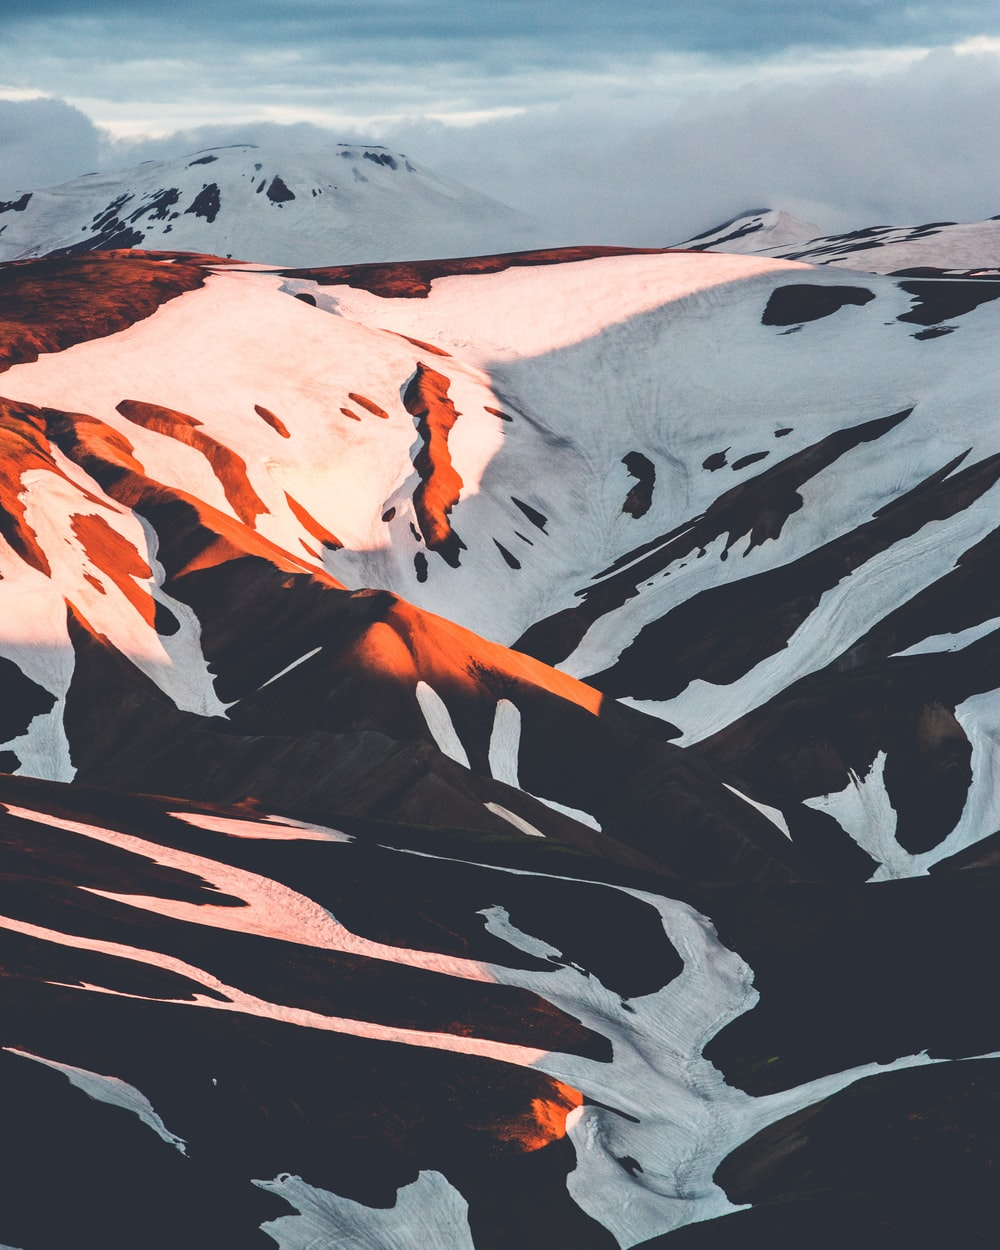 snow capped mountain during golden hour